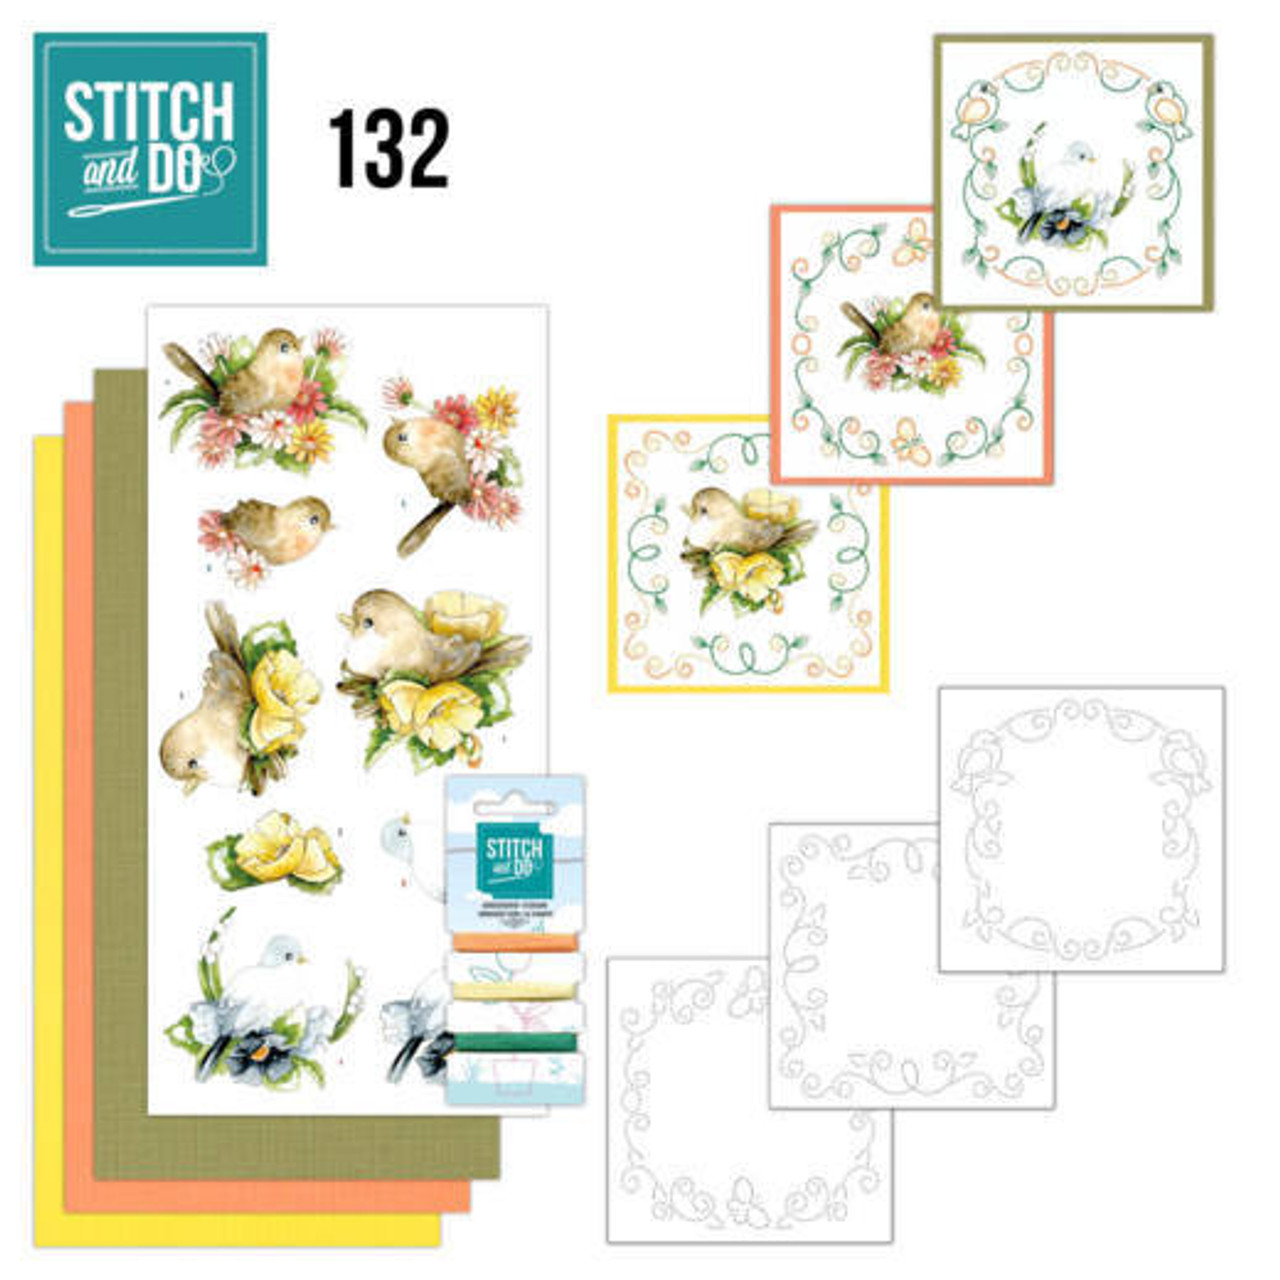 Stitch and Do 132 - Card Embroidery Kit - Delicate Flowers